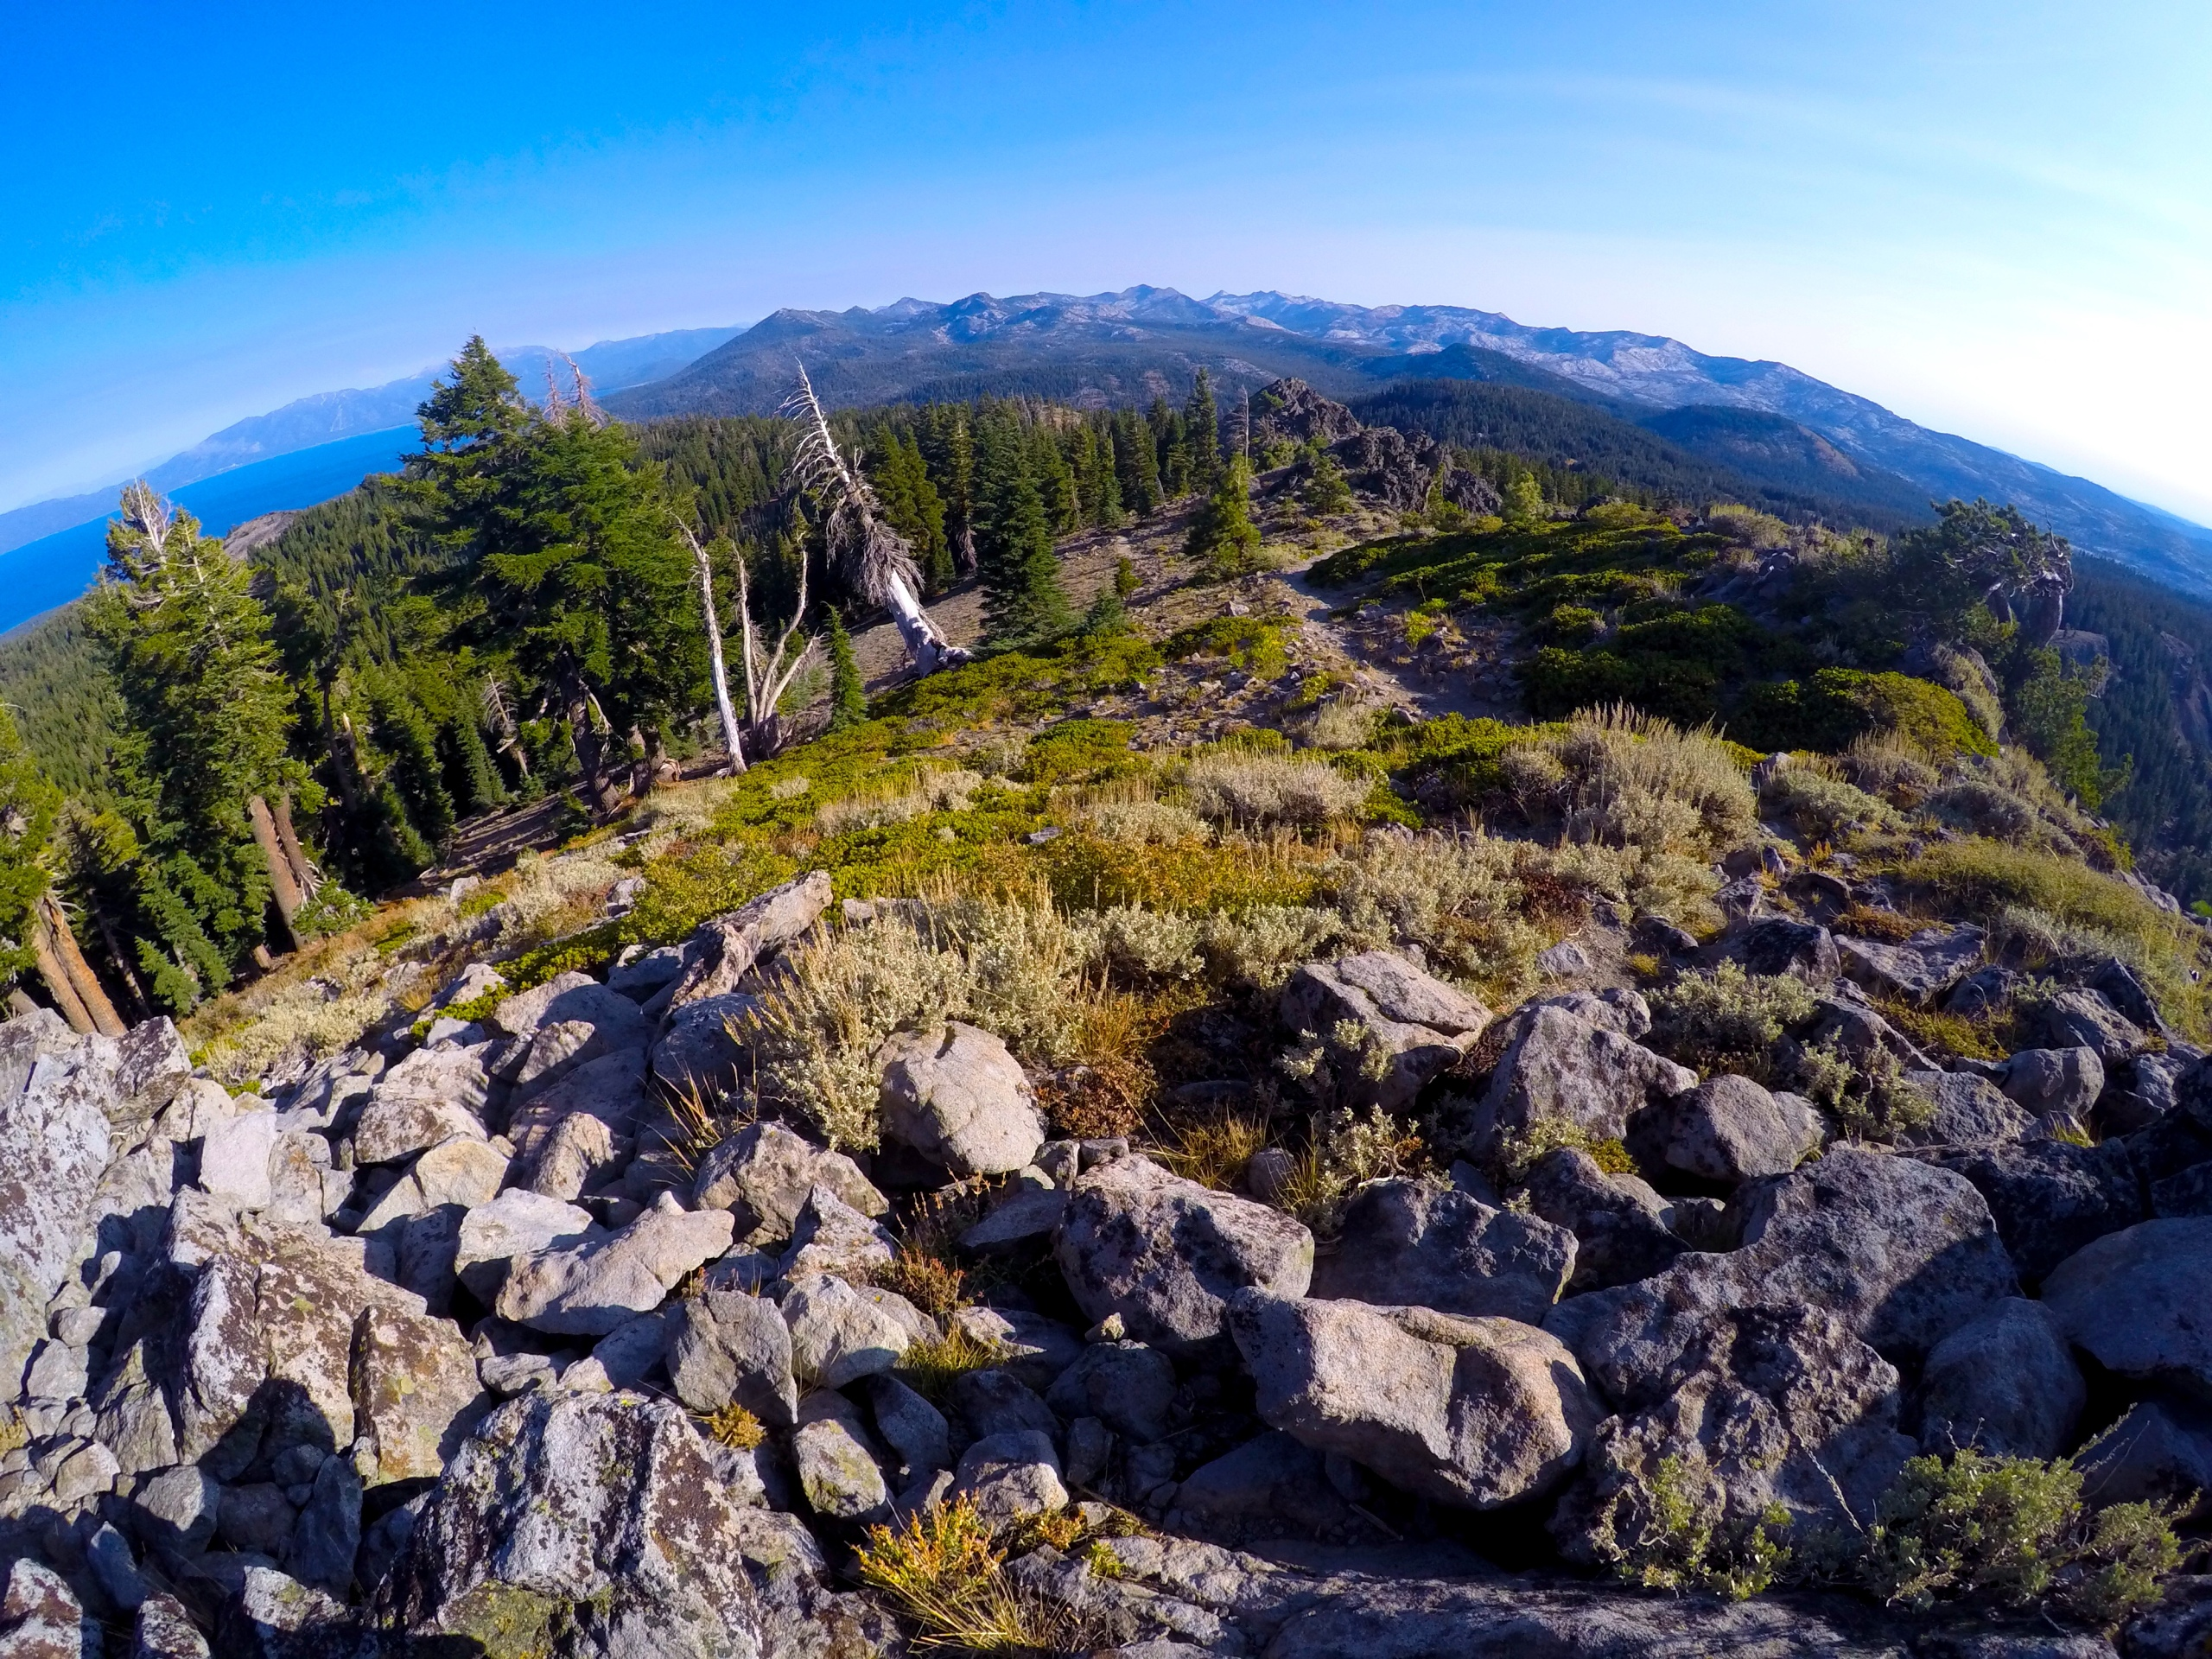 View from Ellis Peak looking South at Lake Tahoe. Desolation Wilderness and Pyramid Peak are to the middle right.